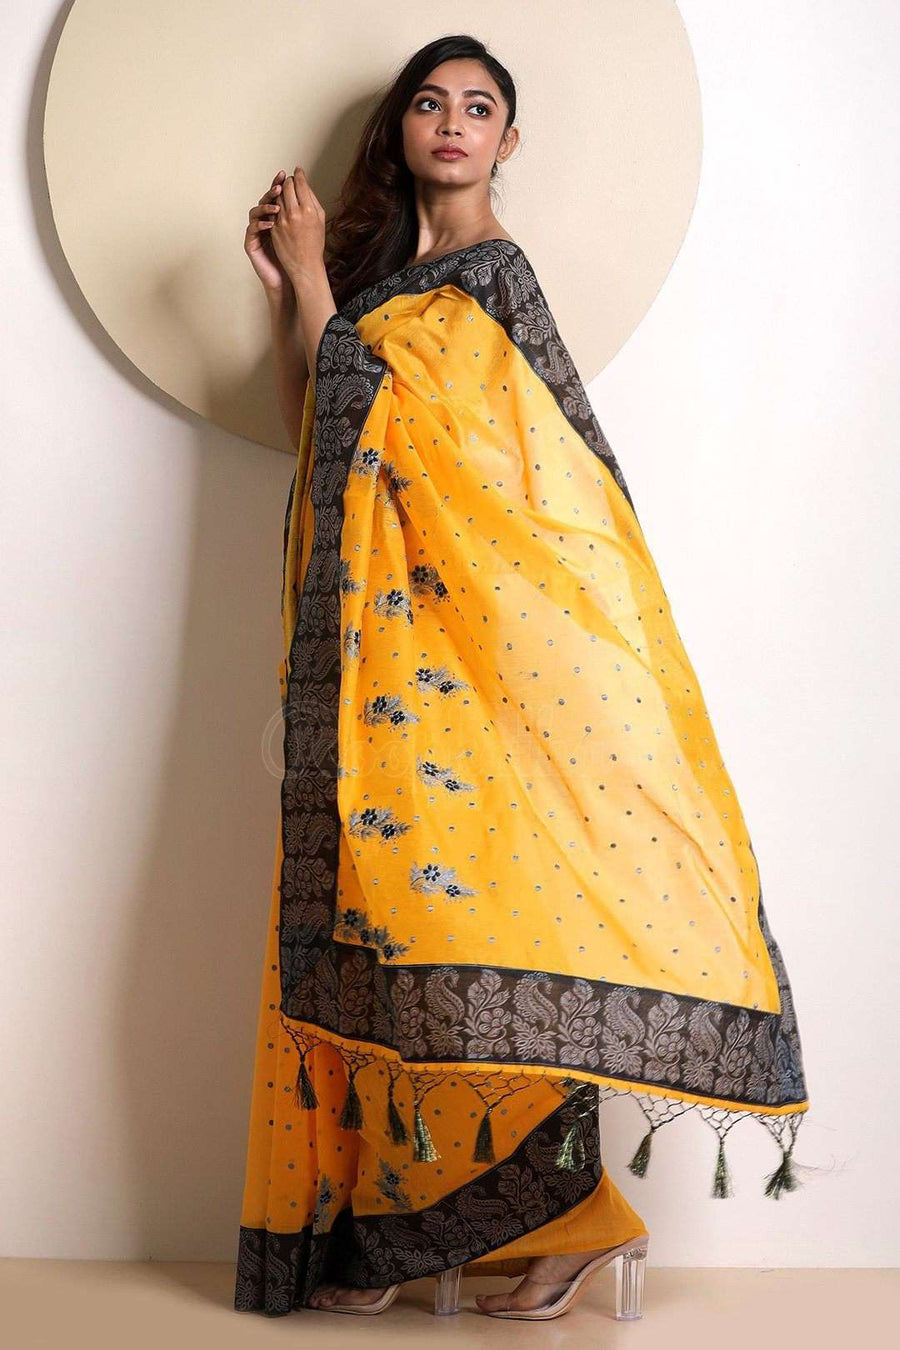 Yellow Varanasi Cotton Saree With Embroidery VARANASI CHRONICLES Roopkatha - A Story of Art